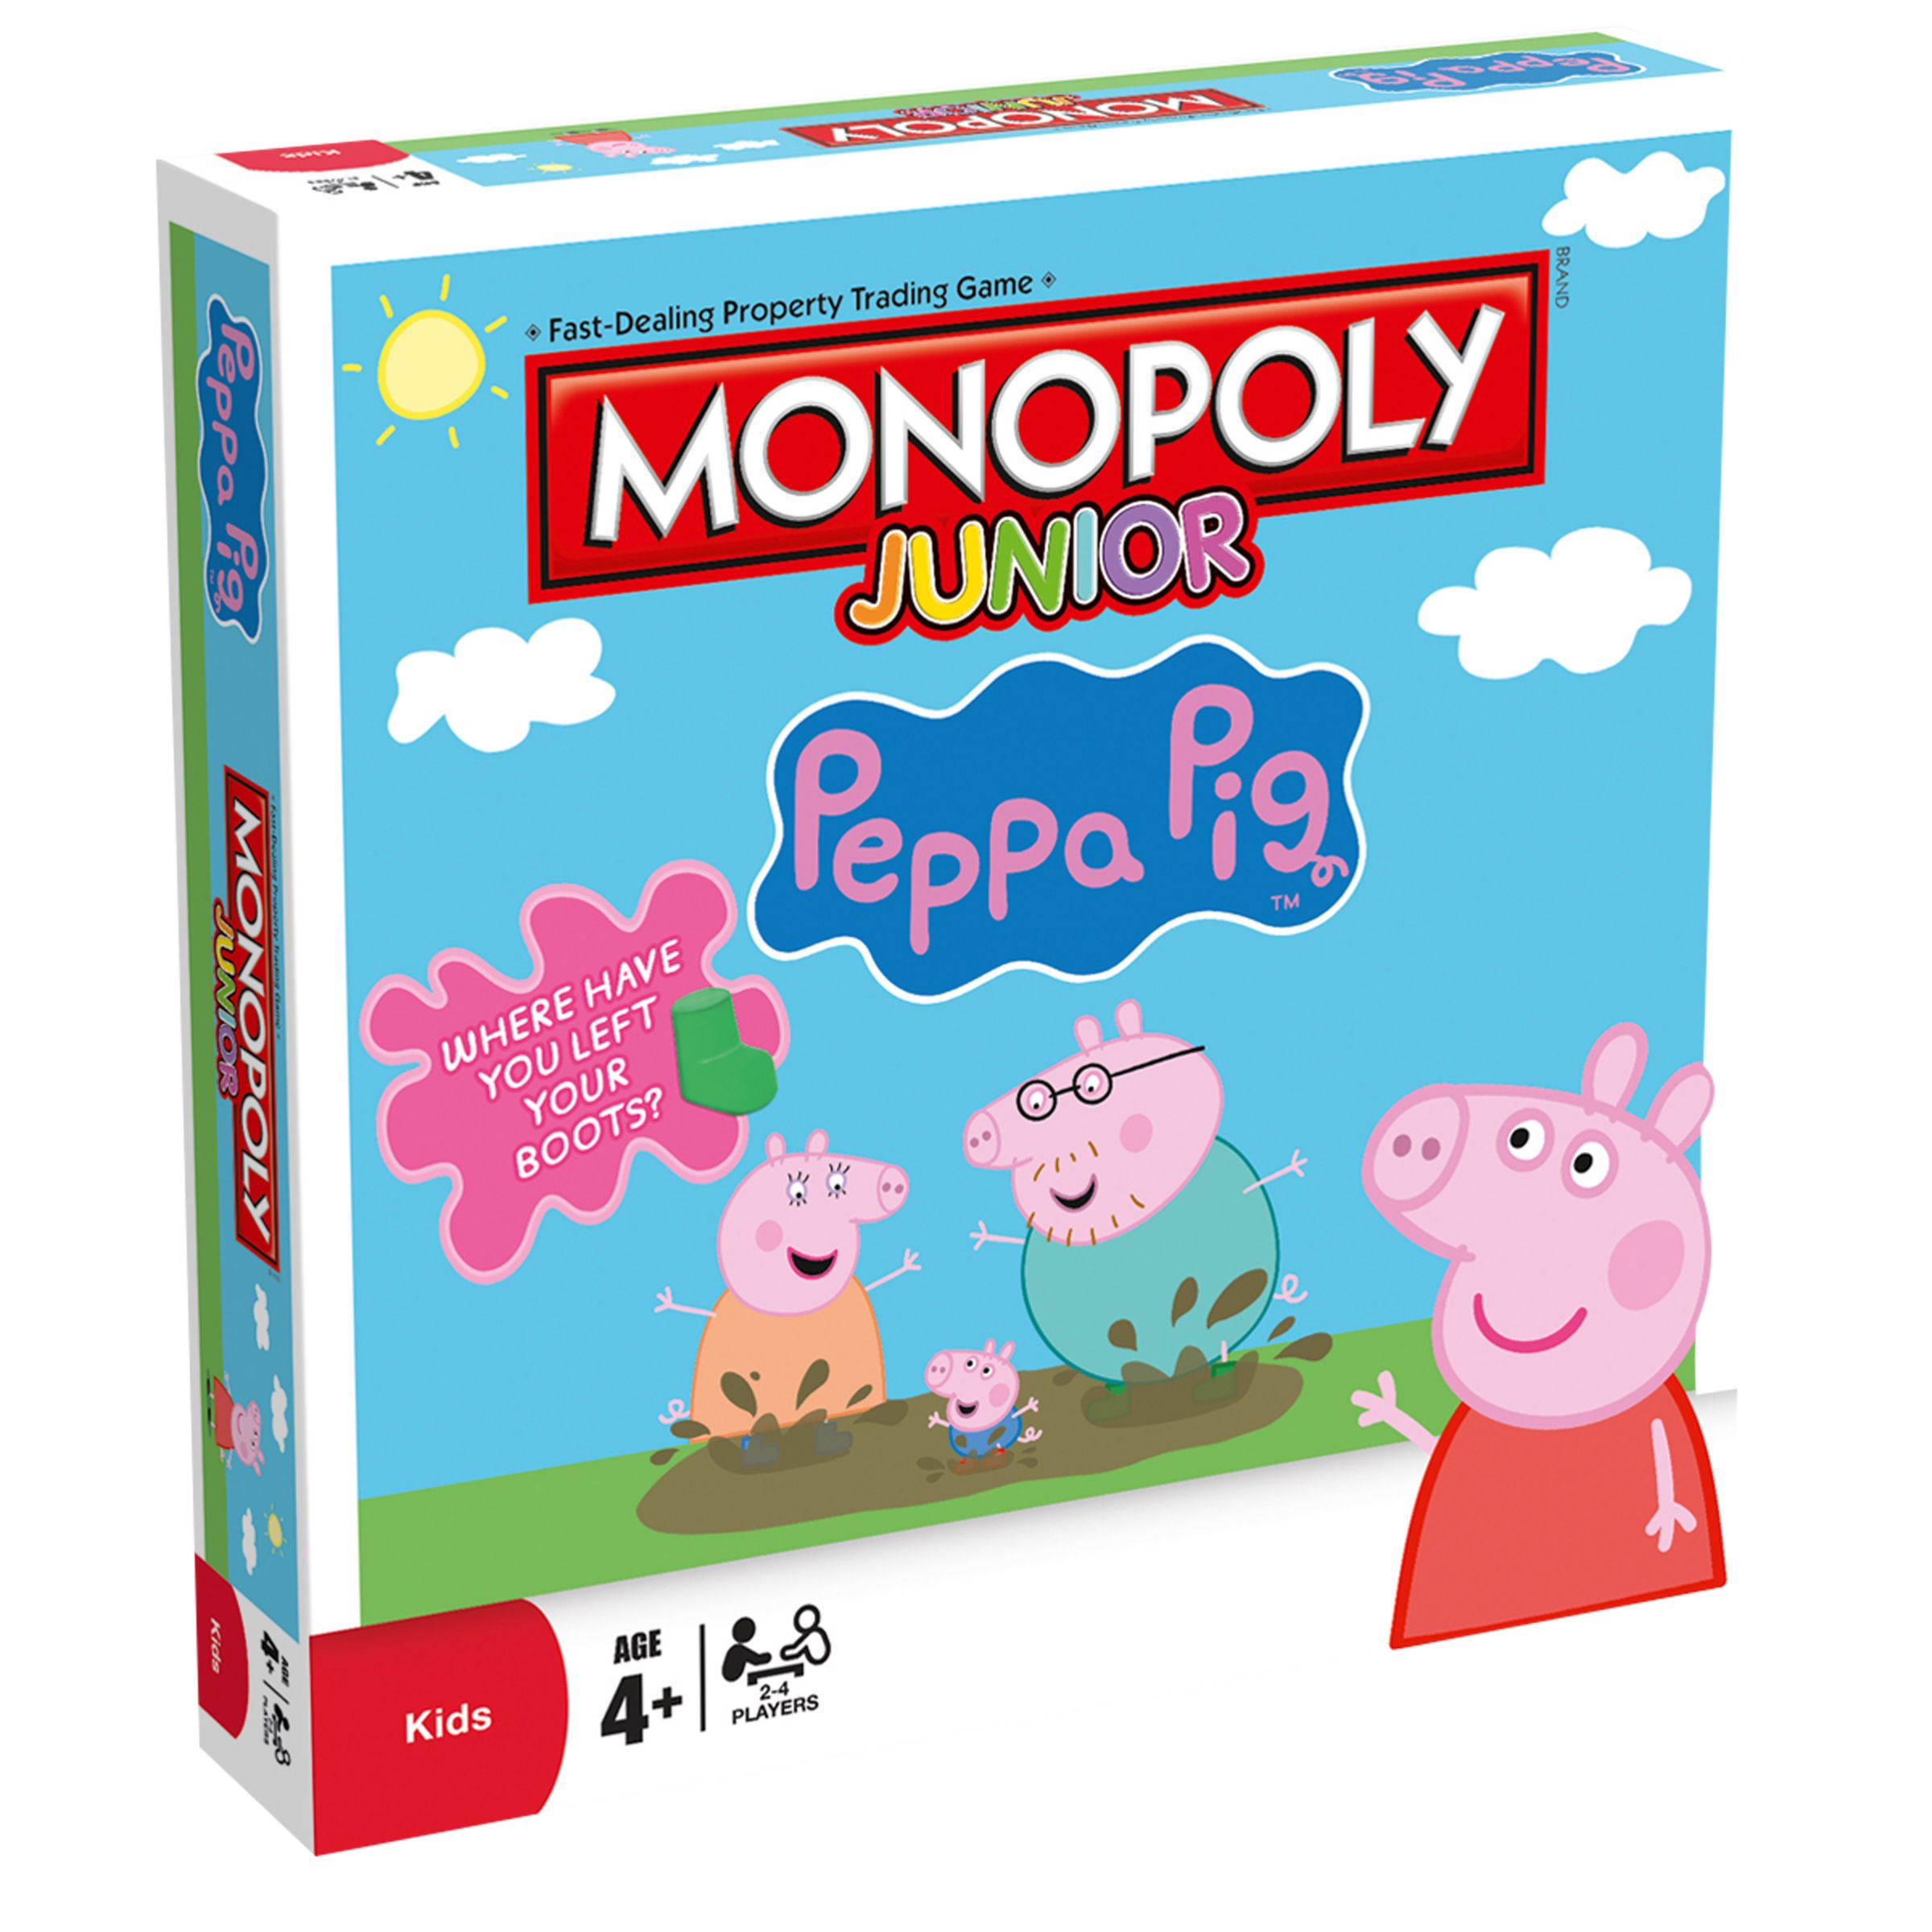 Monopoly Monopoly Junior Peppa Pig Board Game